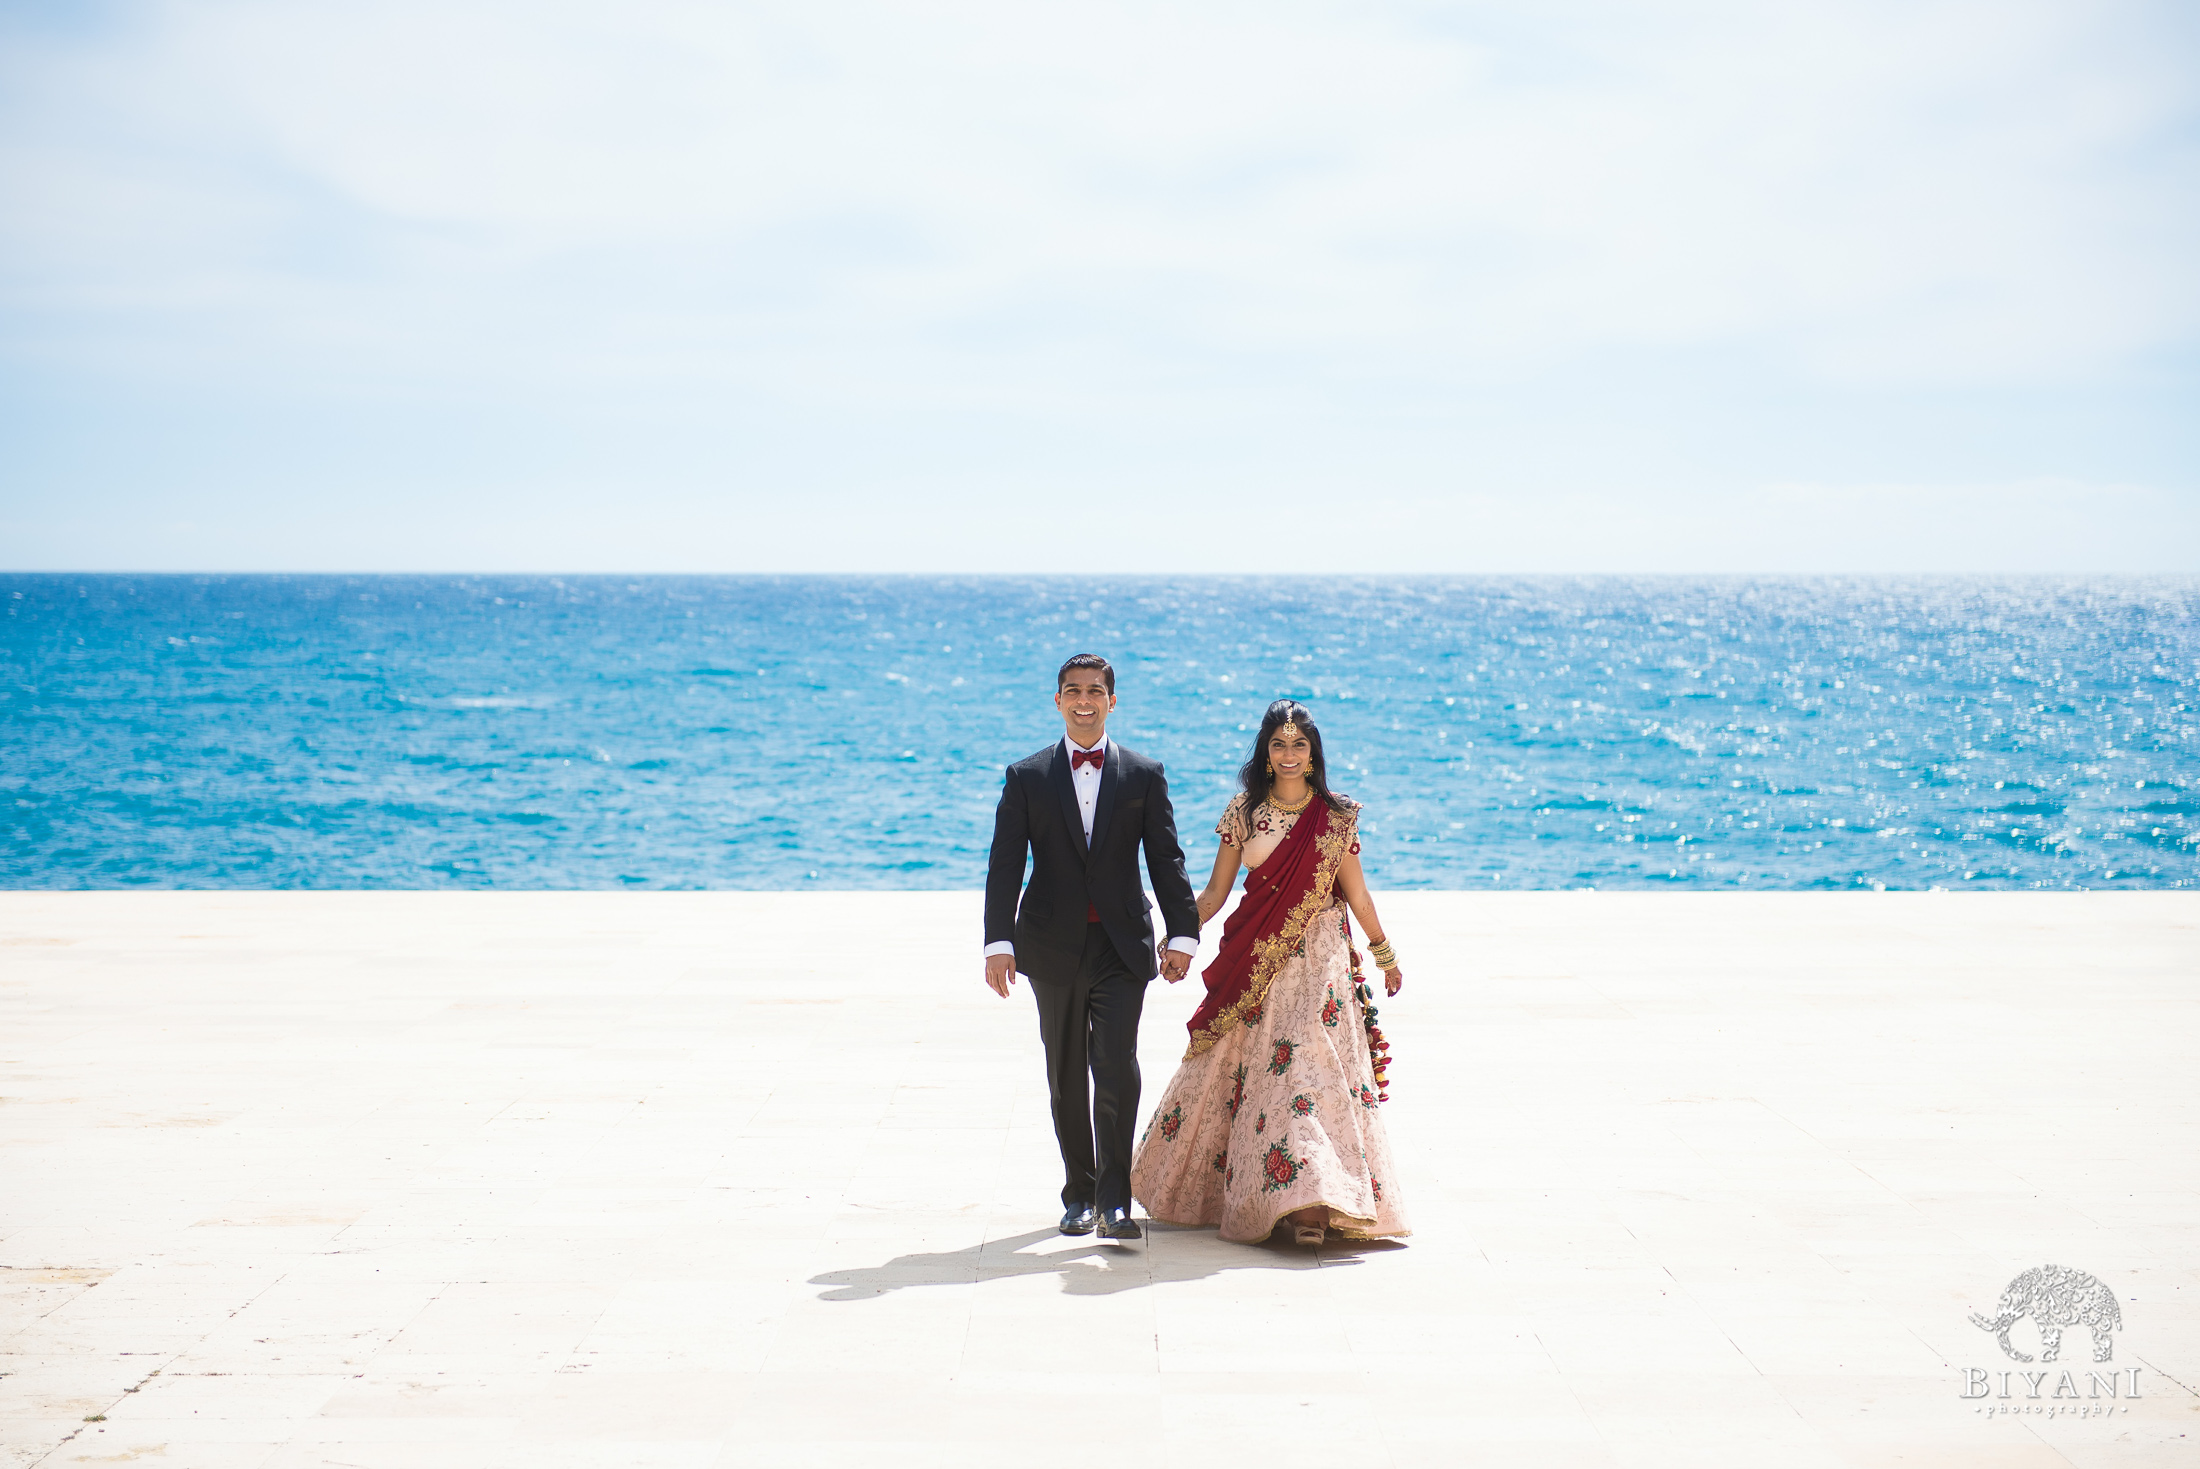 barcelona-weddings-kanchana-arish-01.jpg